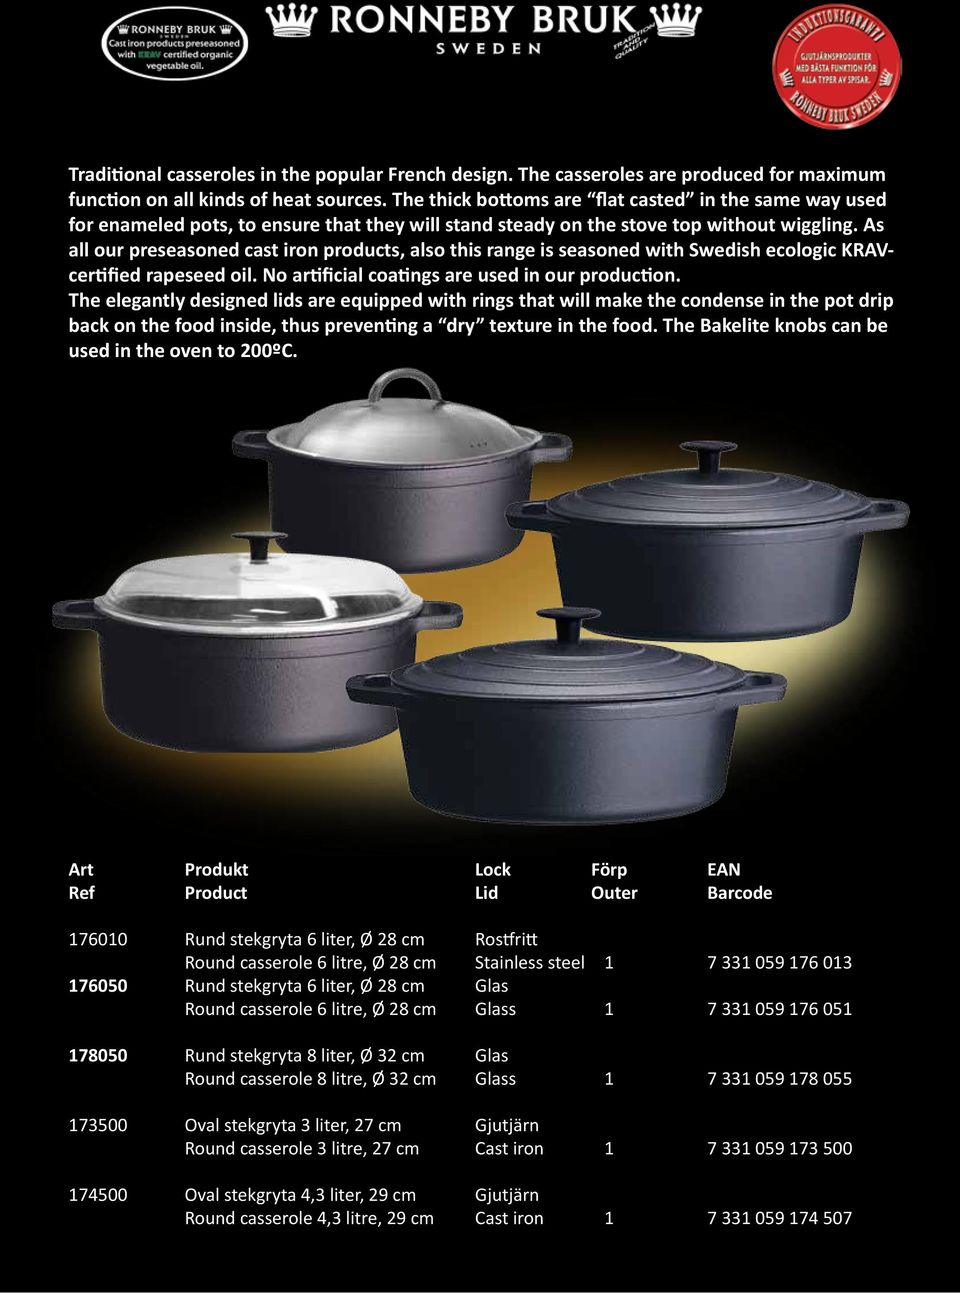 As all our preseasoned cast iron products, also this range is seasoned with Swedish ecologic KRAVcertified rapeseed oil. No artificial coatings are used in our production.